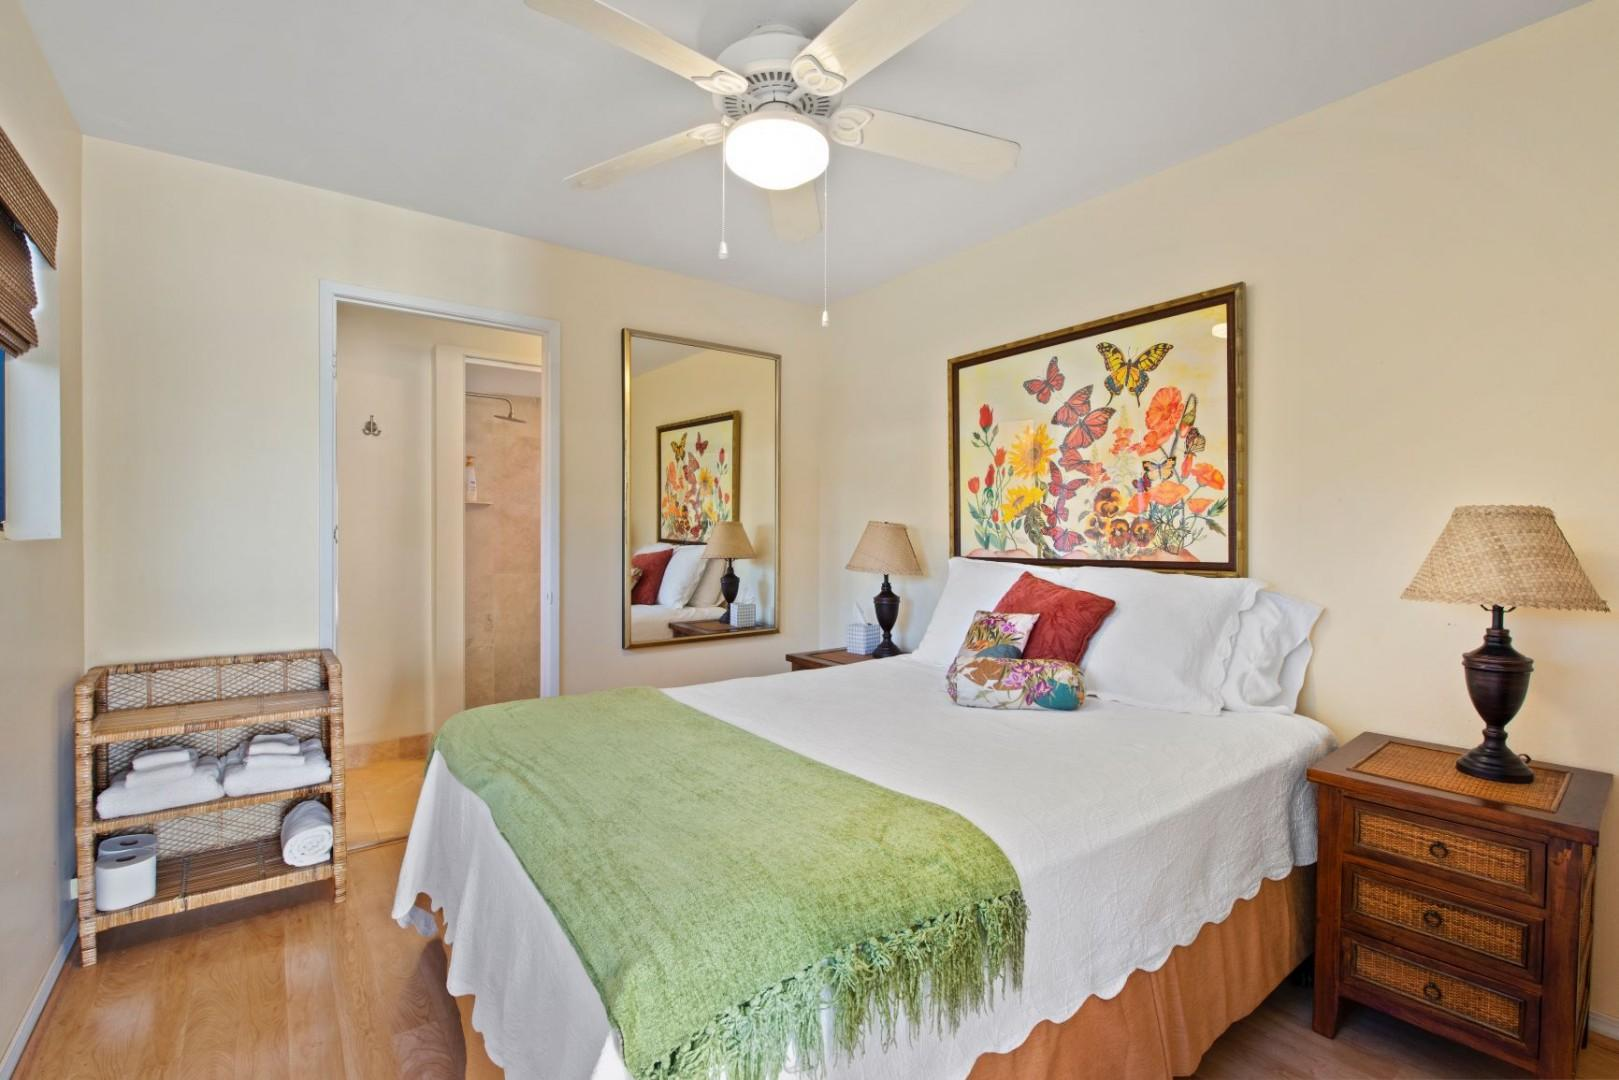 18 Pool House bedroom 1 and 2 both have comfornatle Quuen beds and private en suites